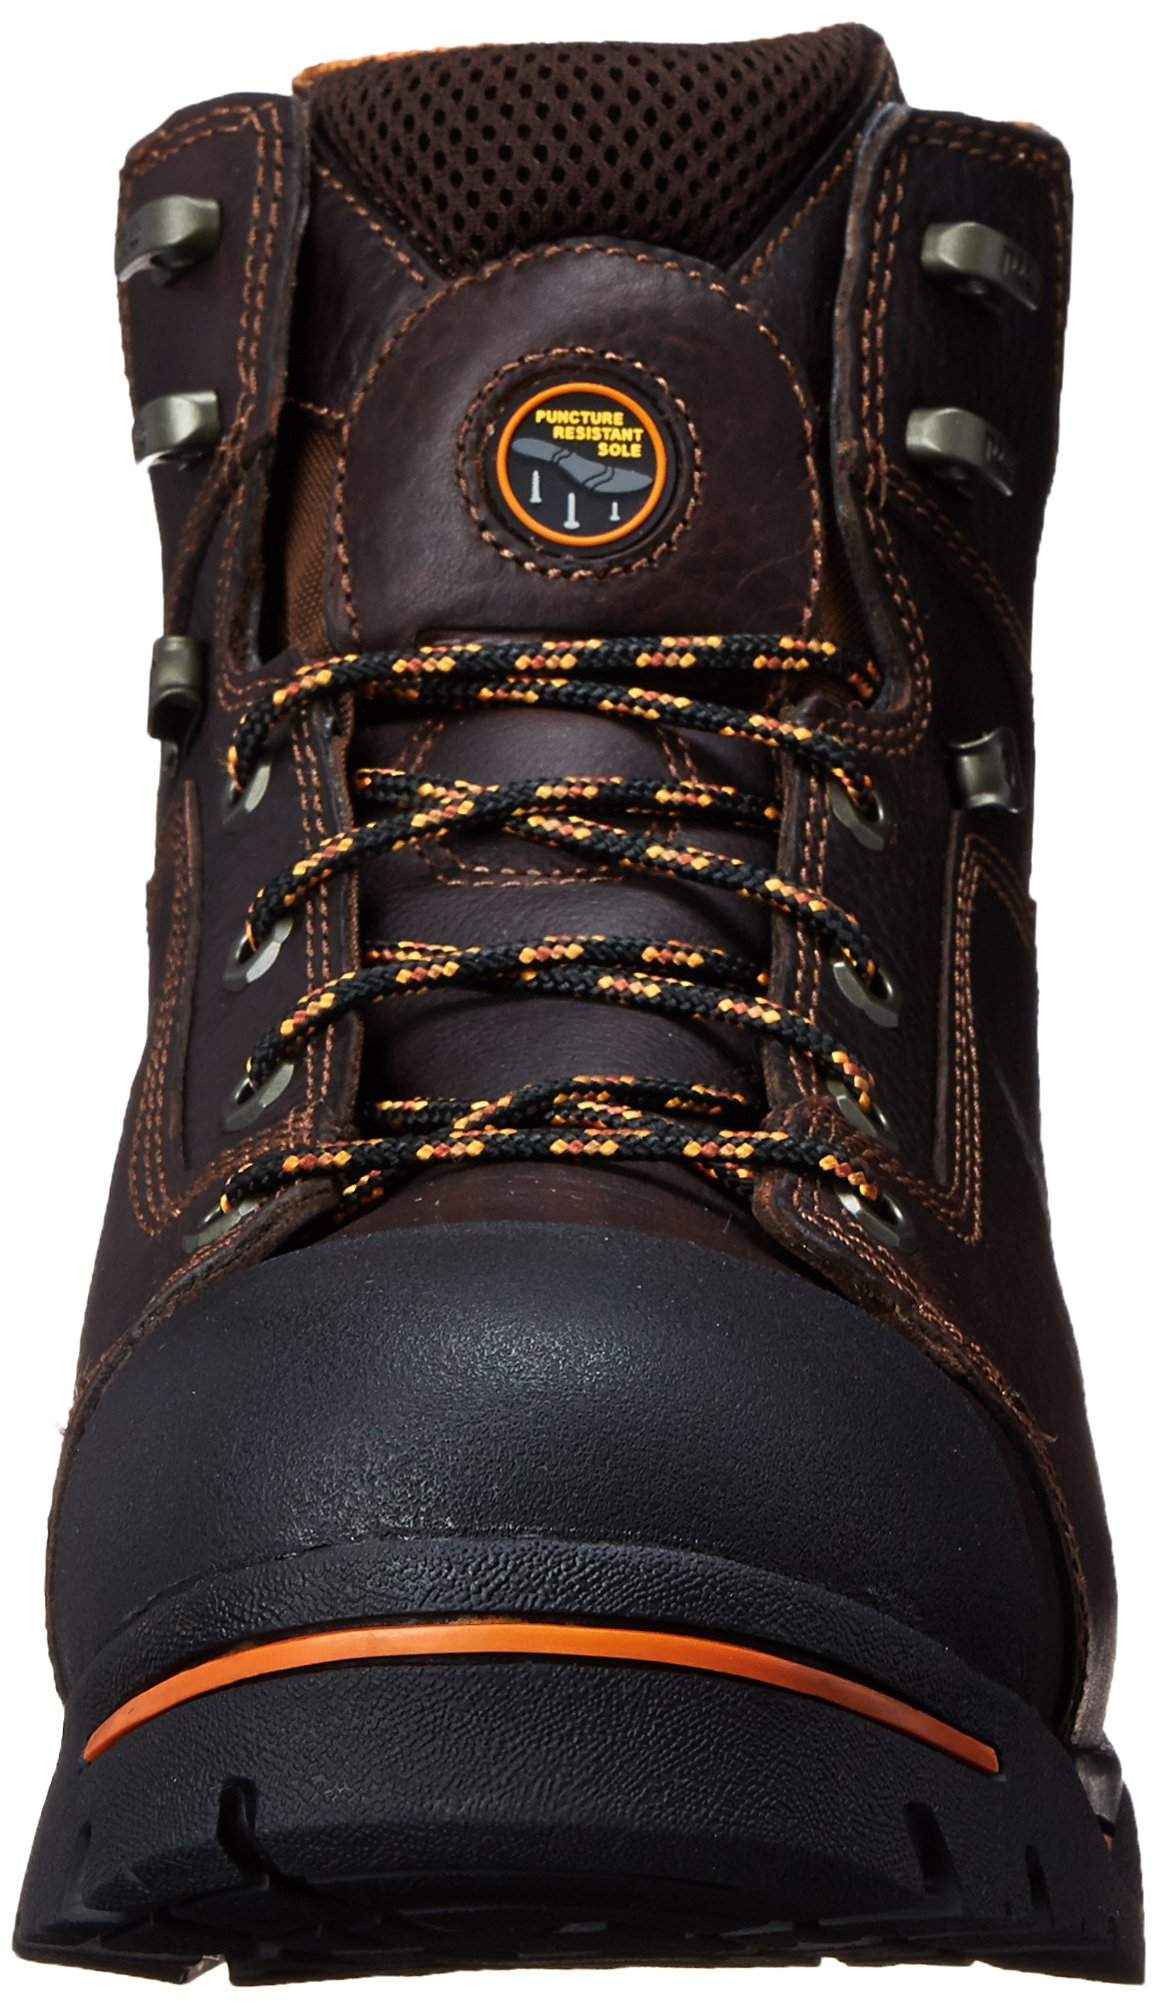 Timberland PRO Men's Endurance 6-Inch Soft Toe BR Work Boot,Briar,9.5 W US by Timberland PRO (Image #4)